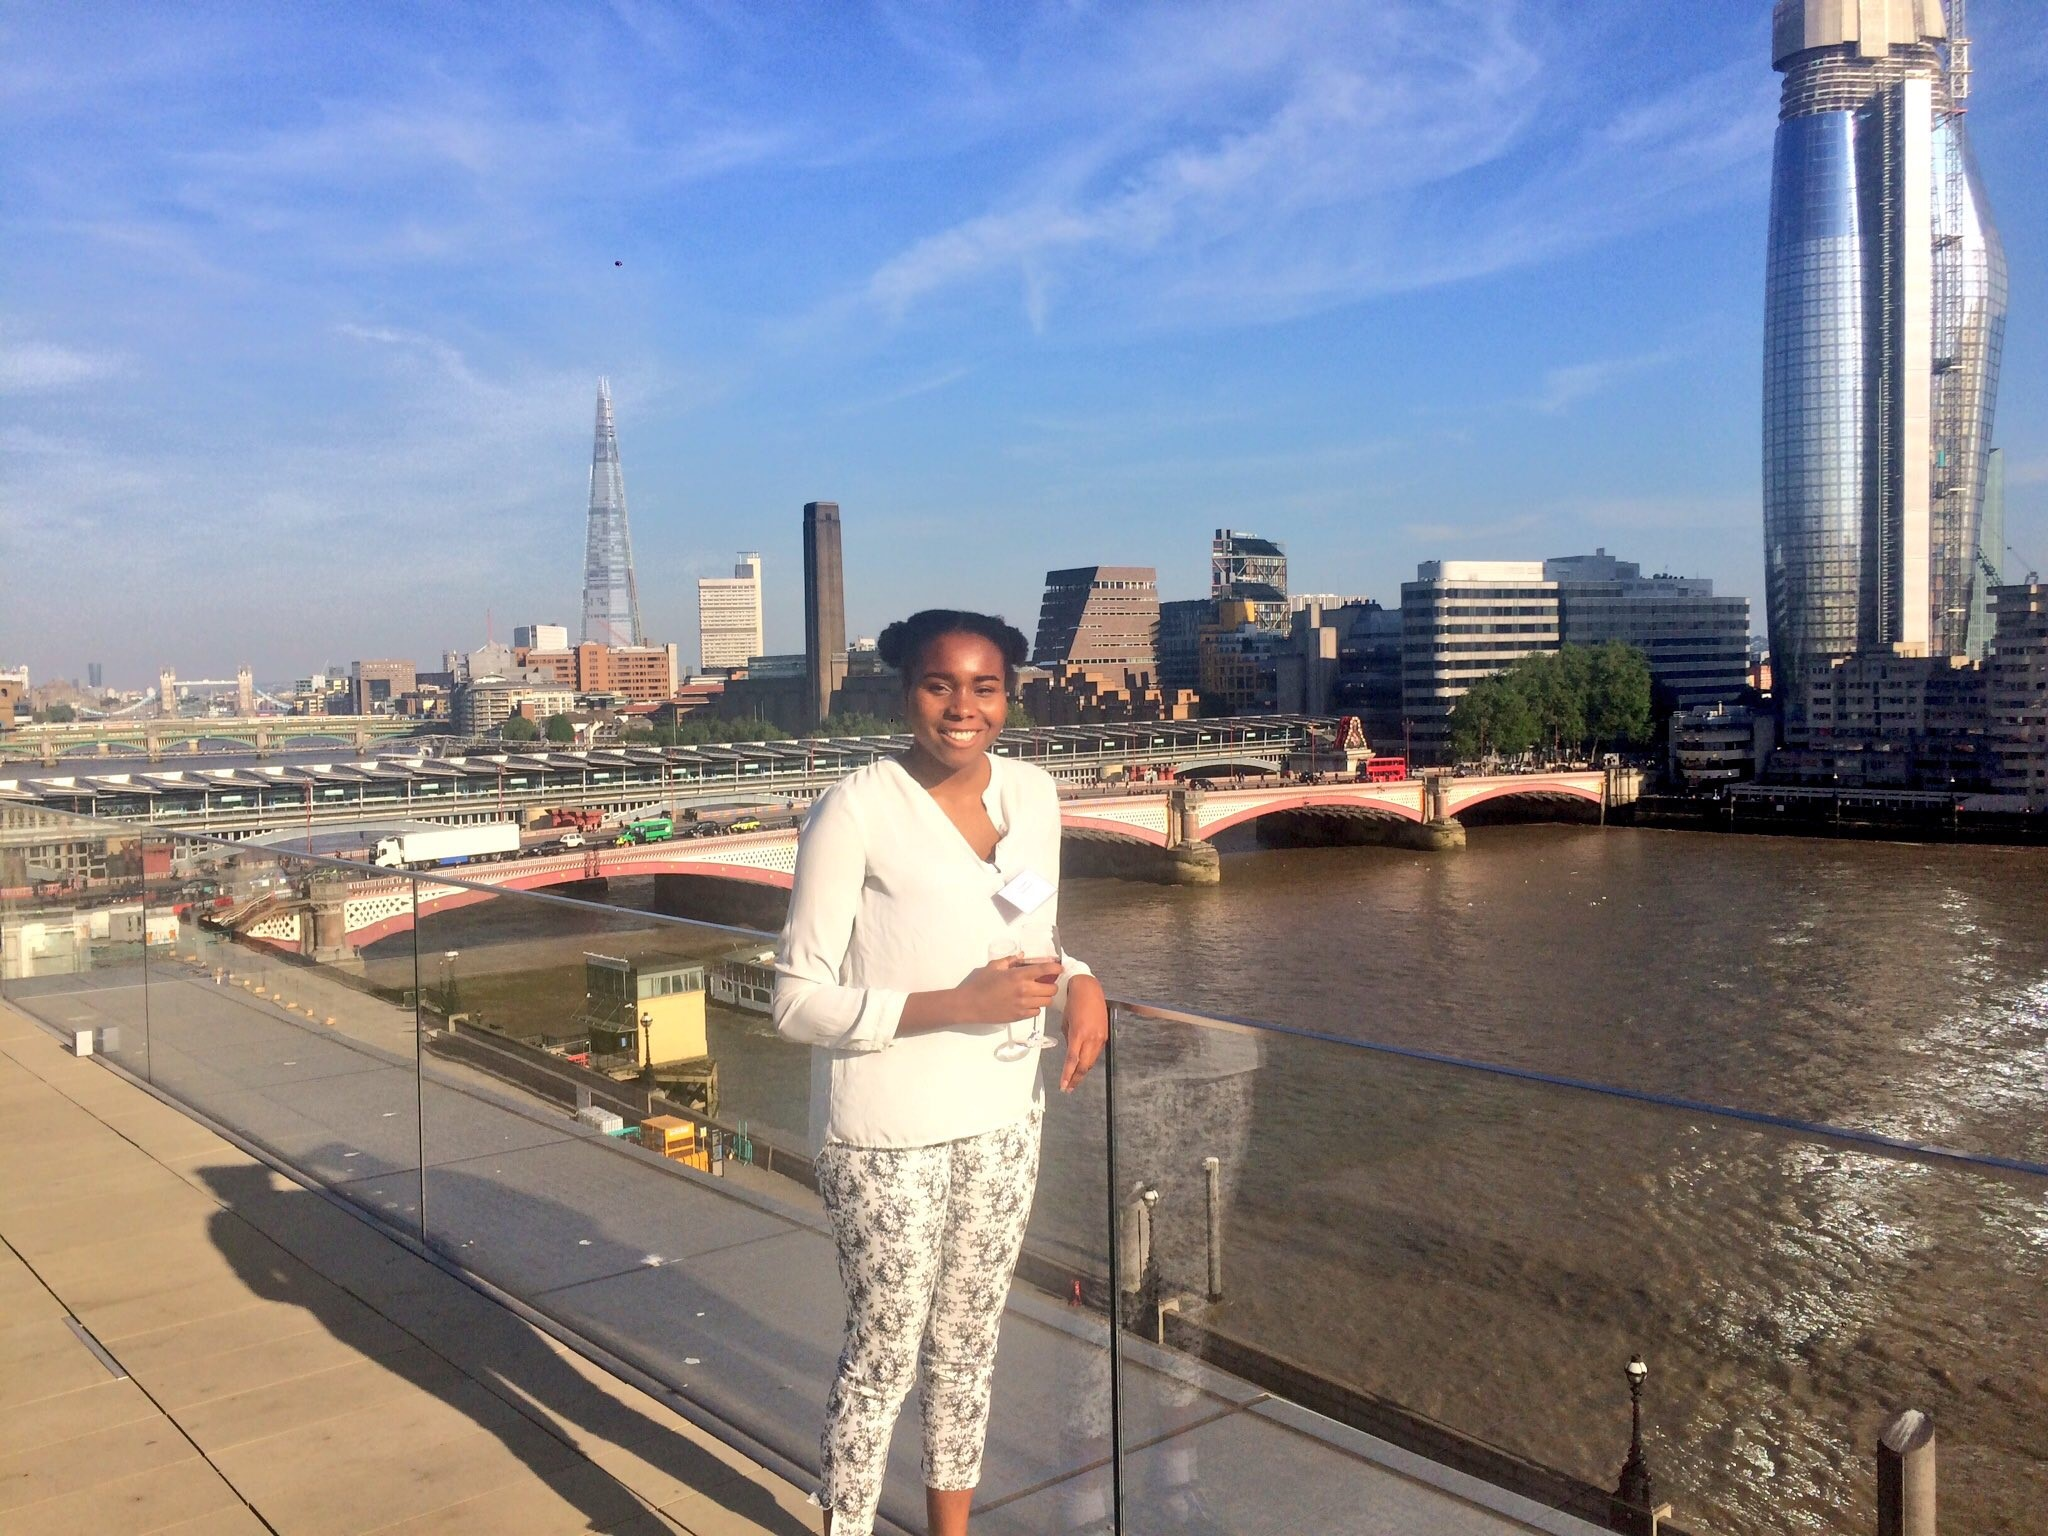 Ada on the Hachette rooftop, at the Kim Scott Walwyn Awards